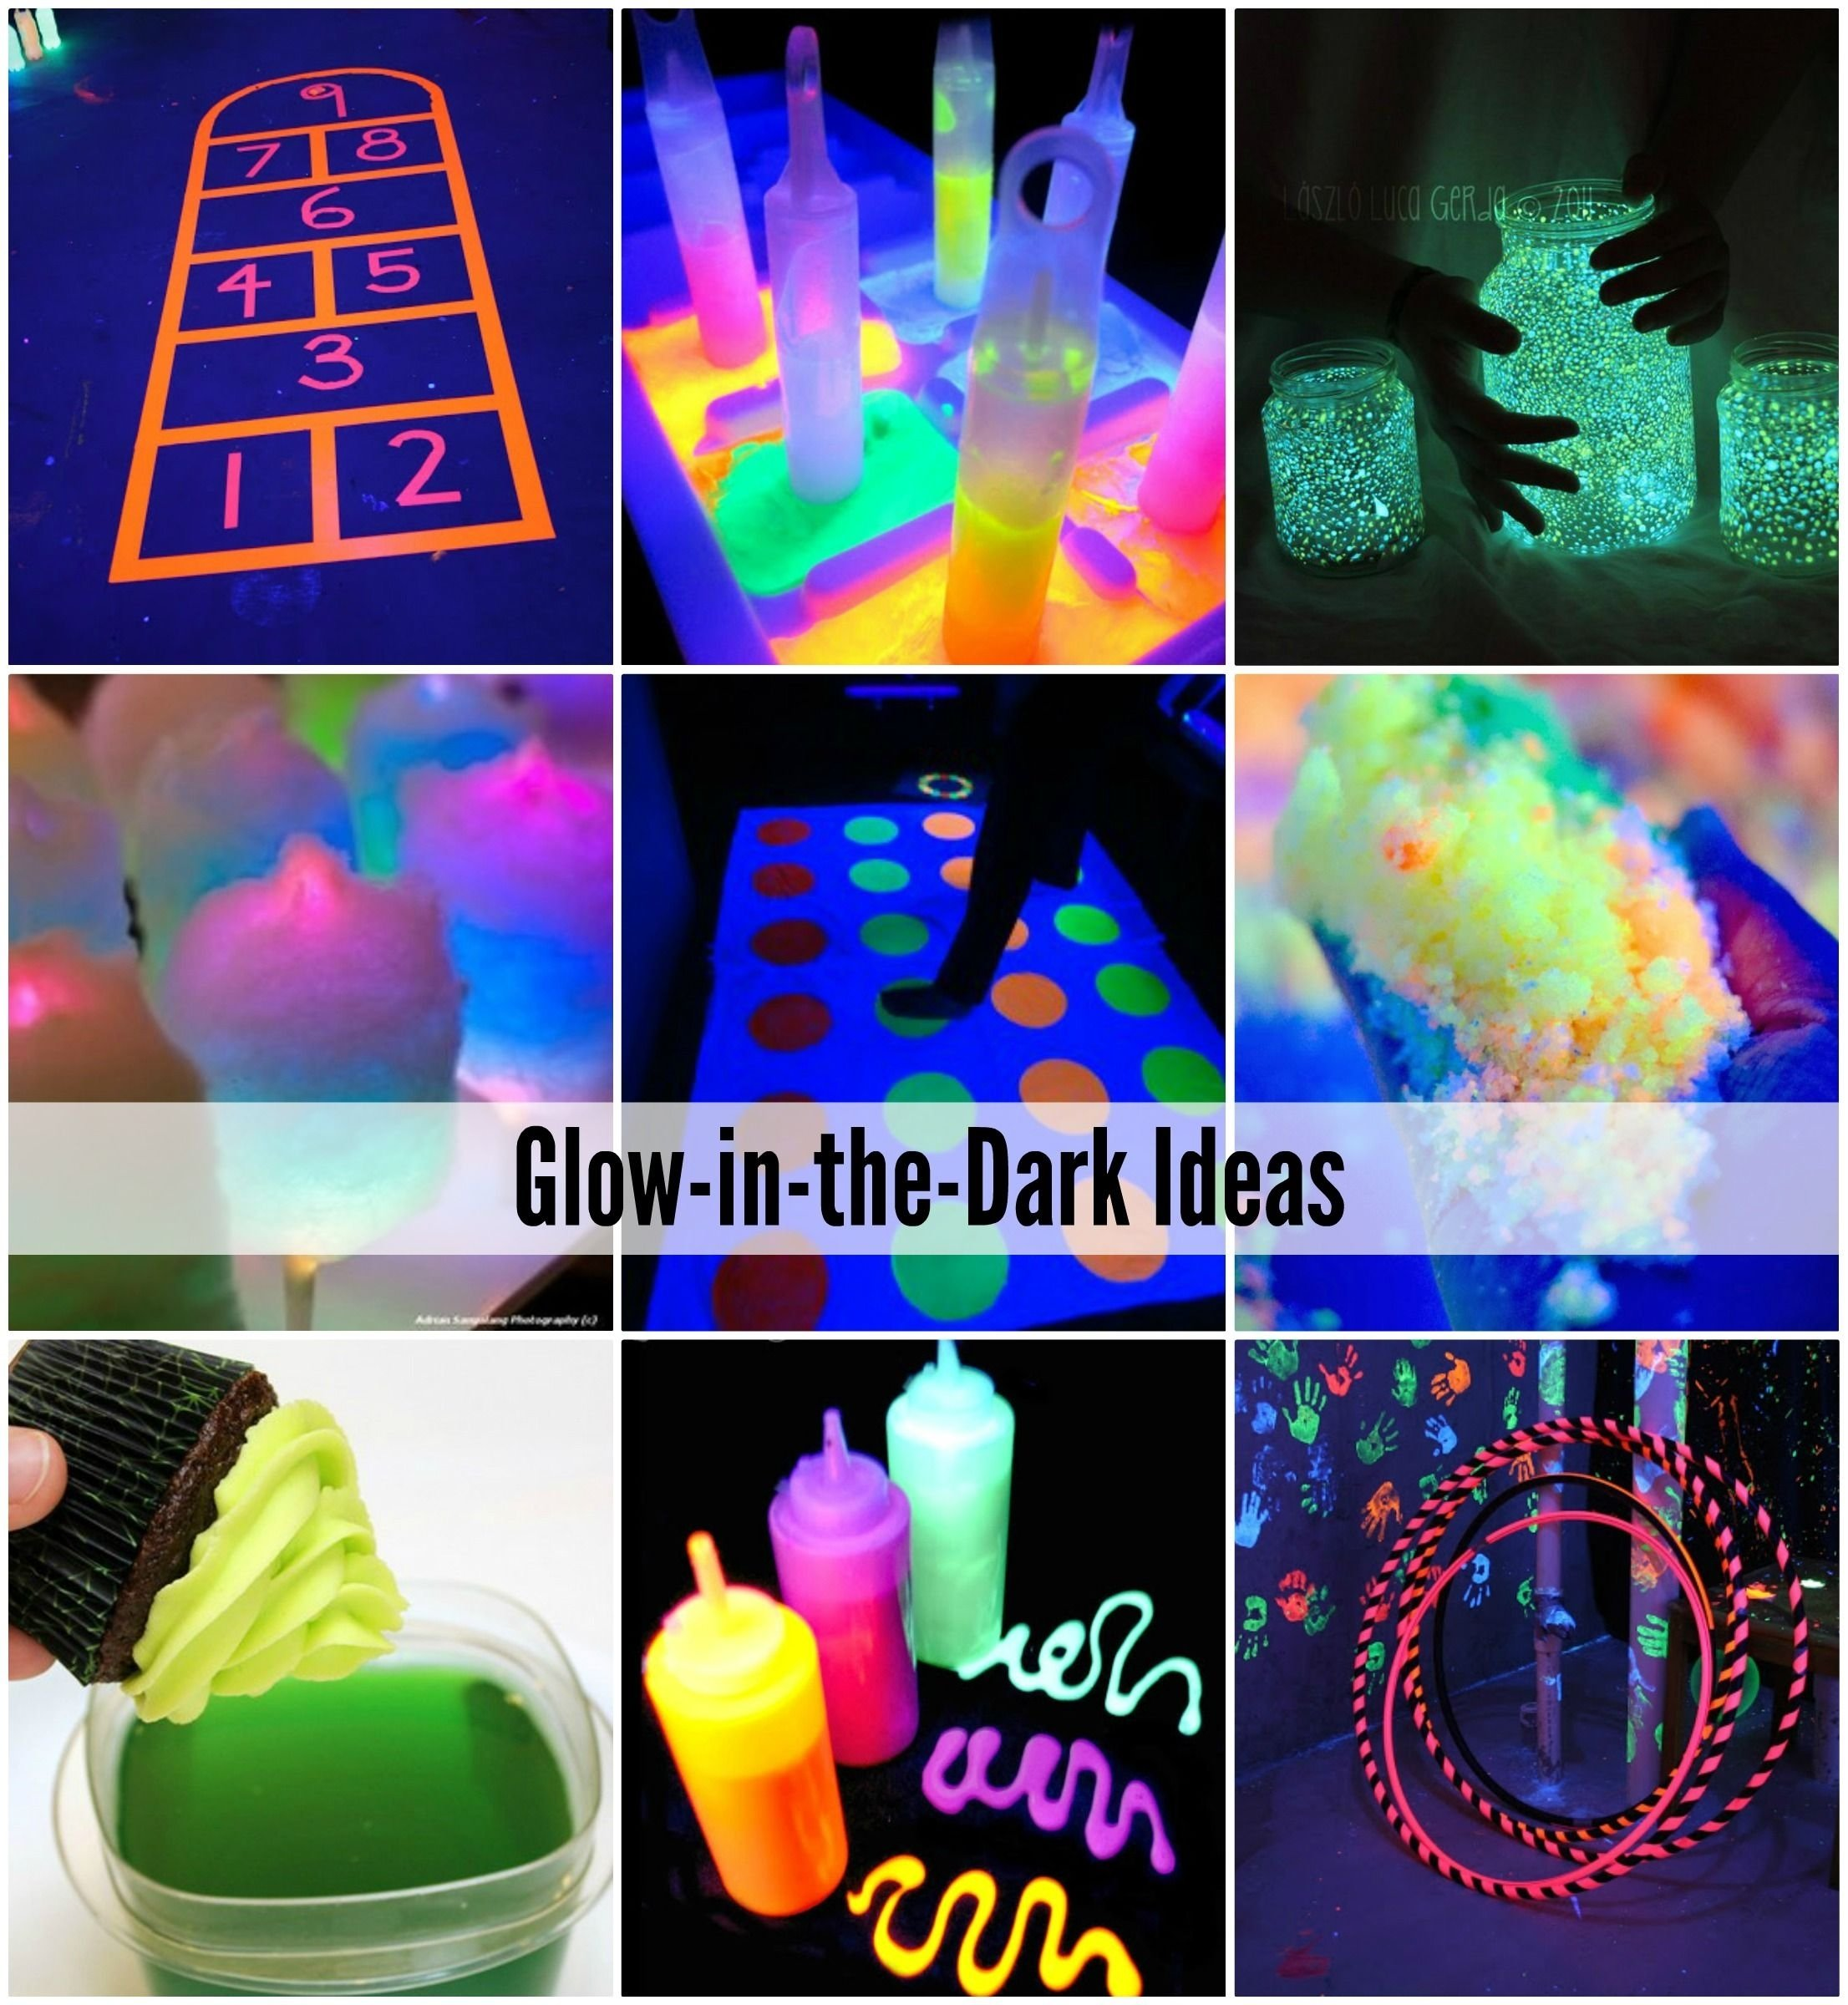 glow-in-the-dark games, activities and food | fêtes, activité et fluo